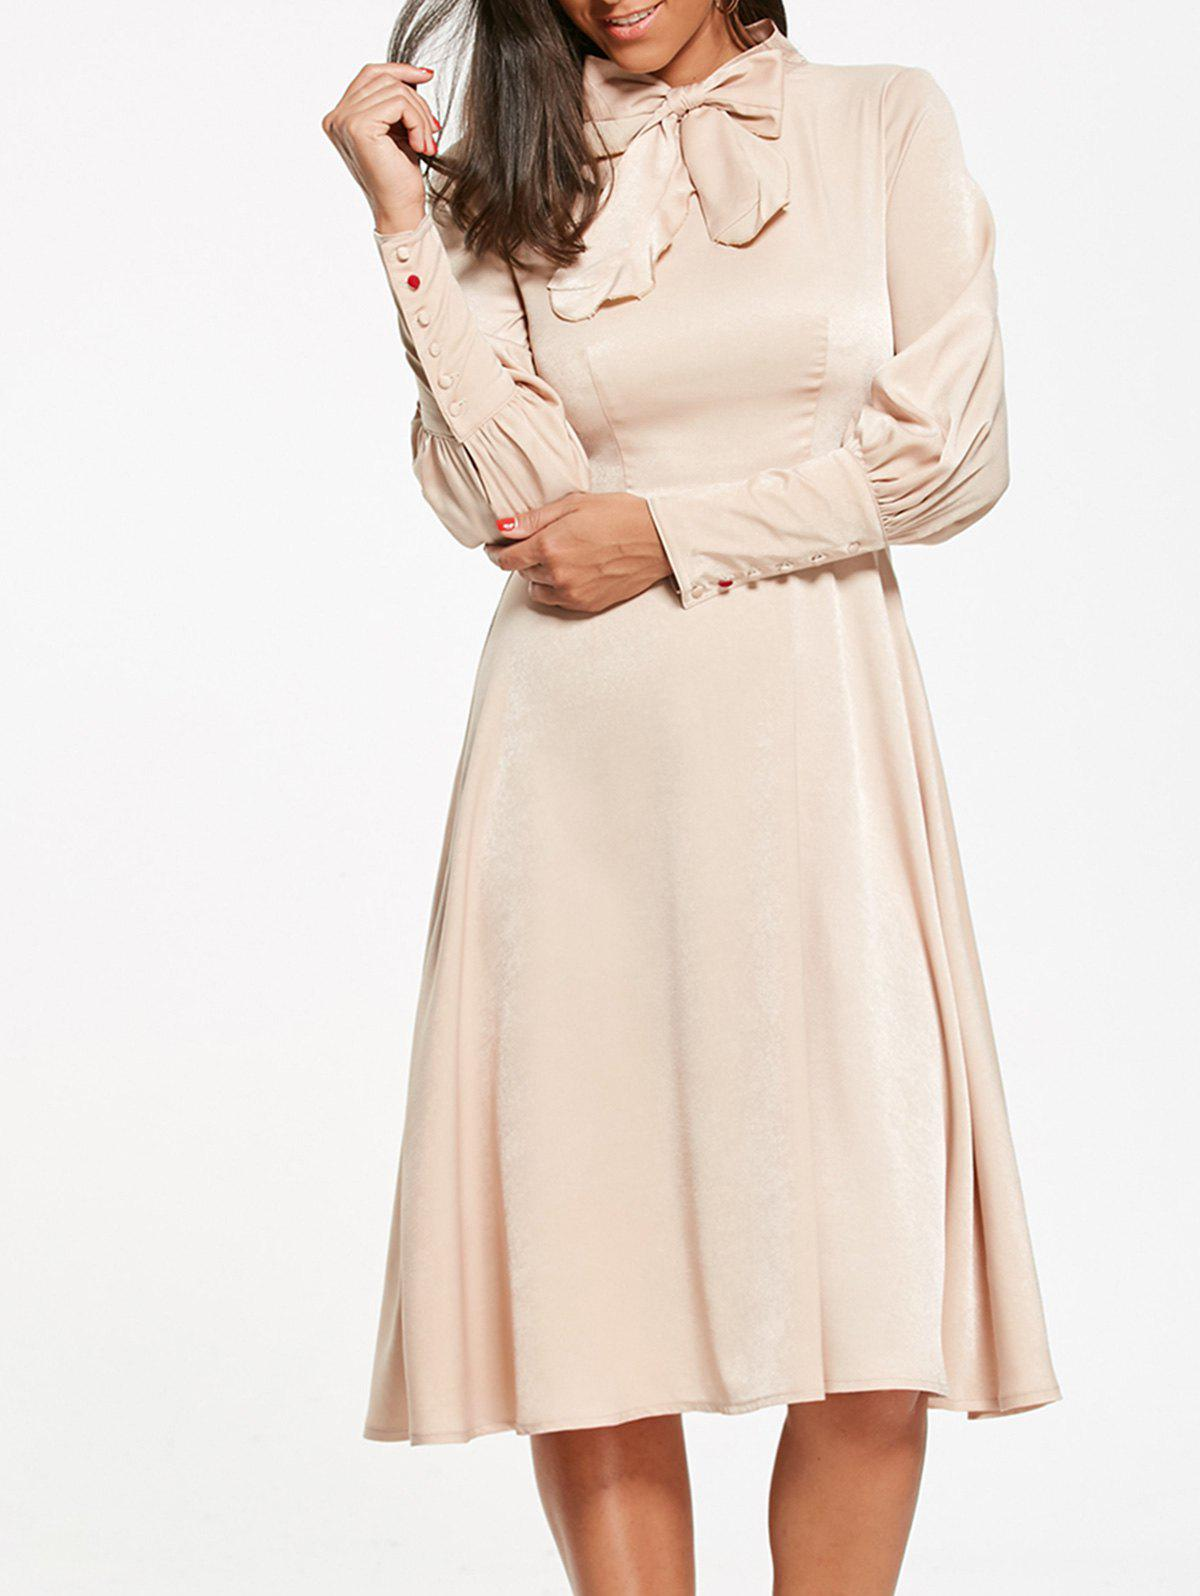 Bow Tie Collar Cuff Sleeve Flare Dress - Beige Léger XL